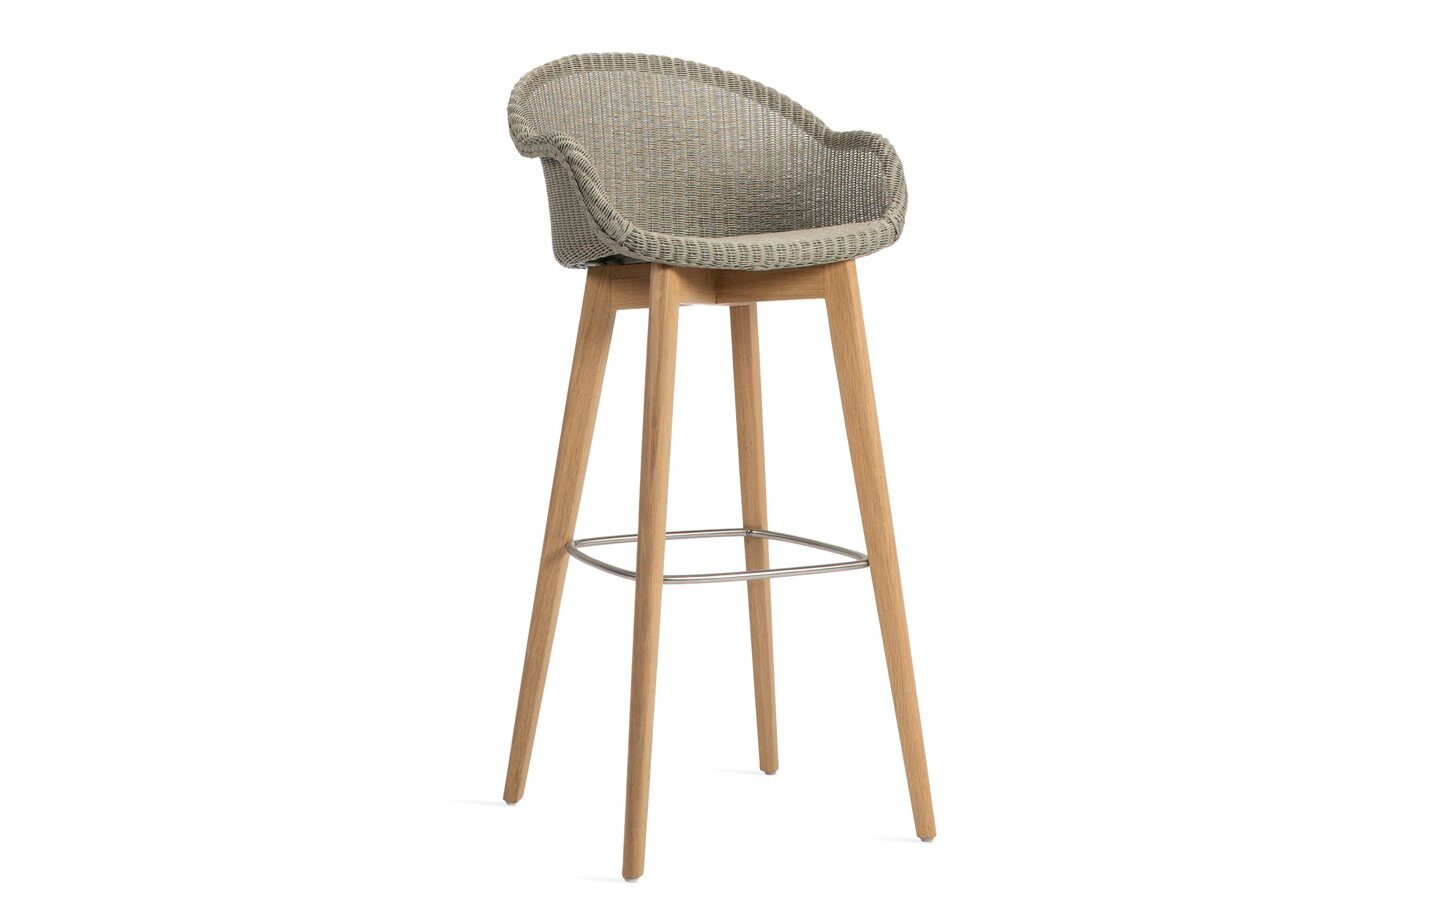 Avril-bar-stool-oak-base-01